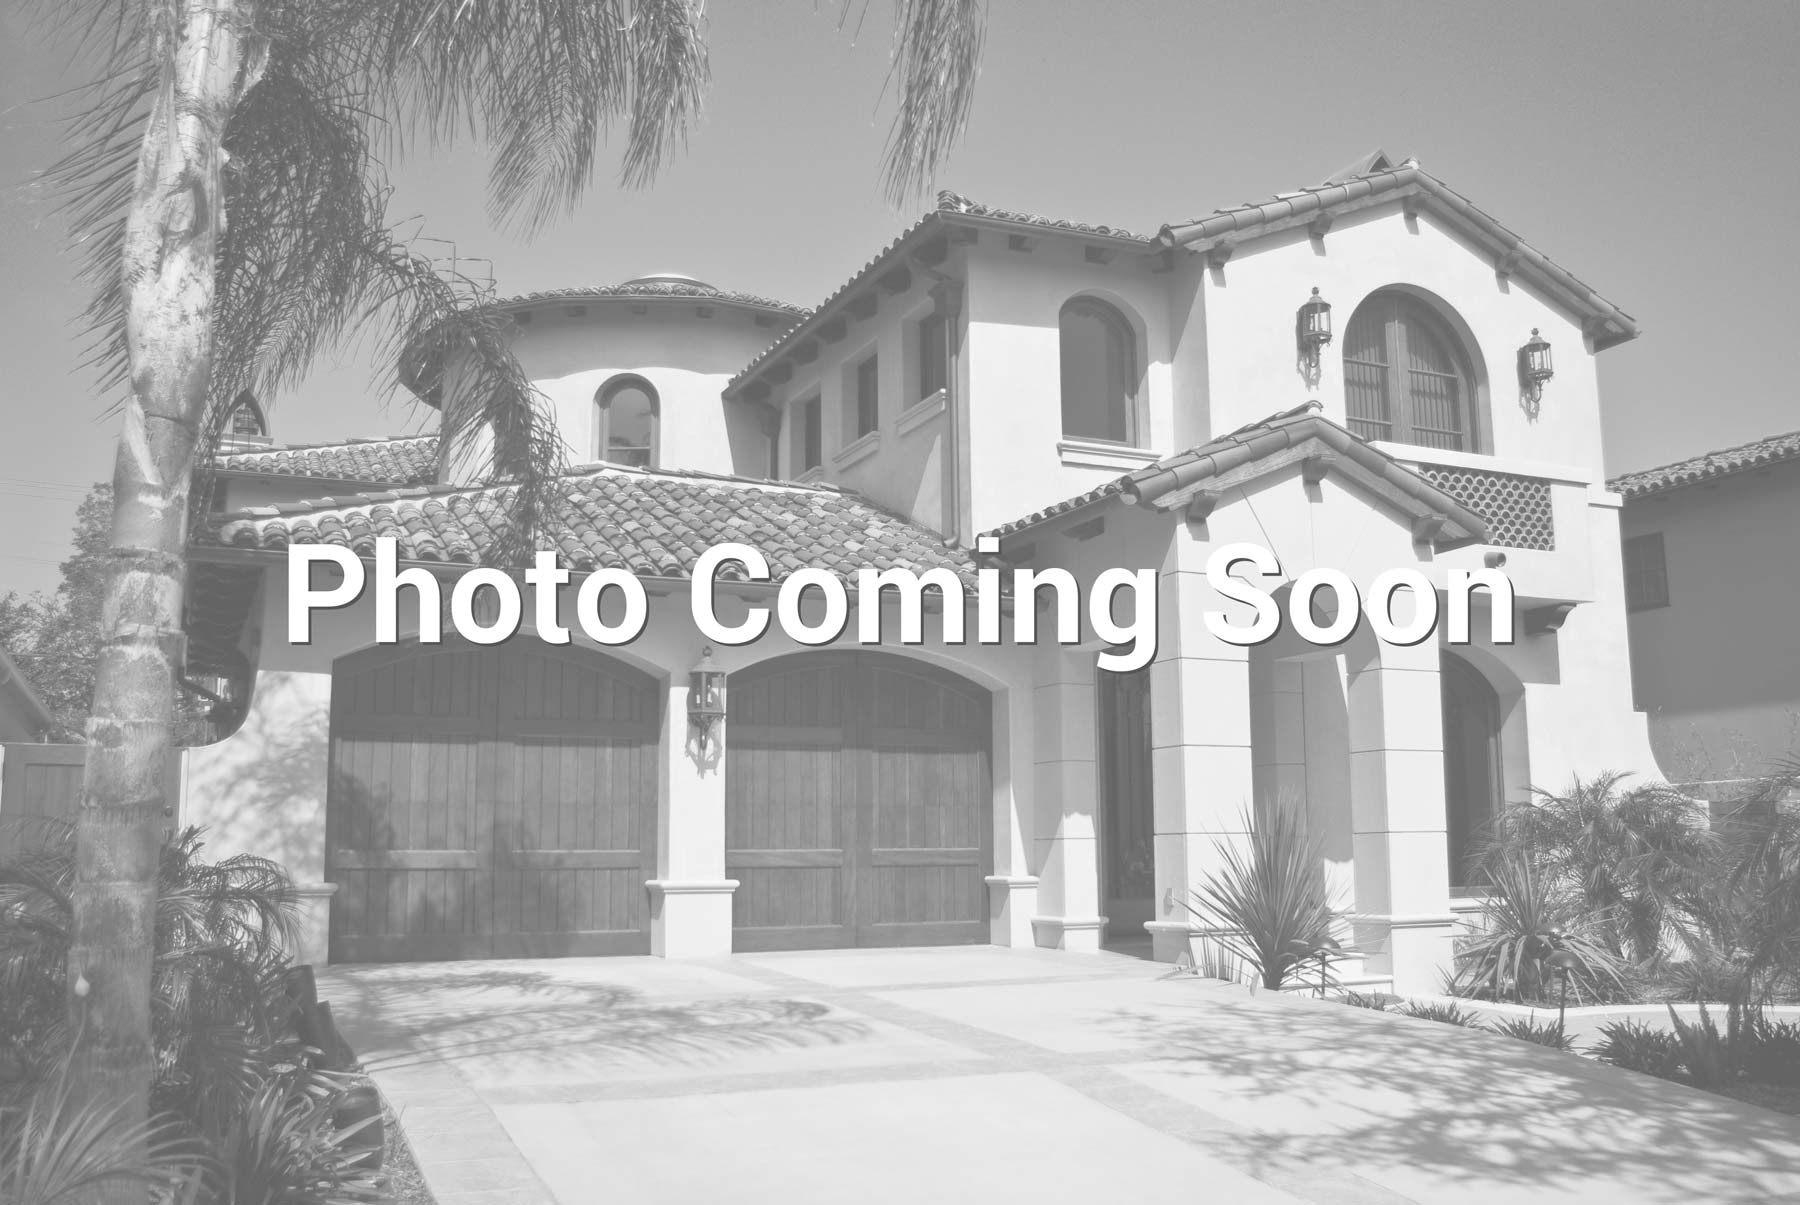 $59,900 - 4Br/2Ba -  for Sale in Eastvale